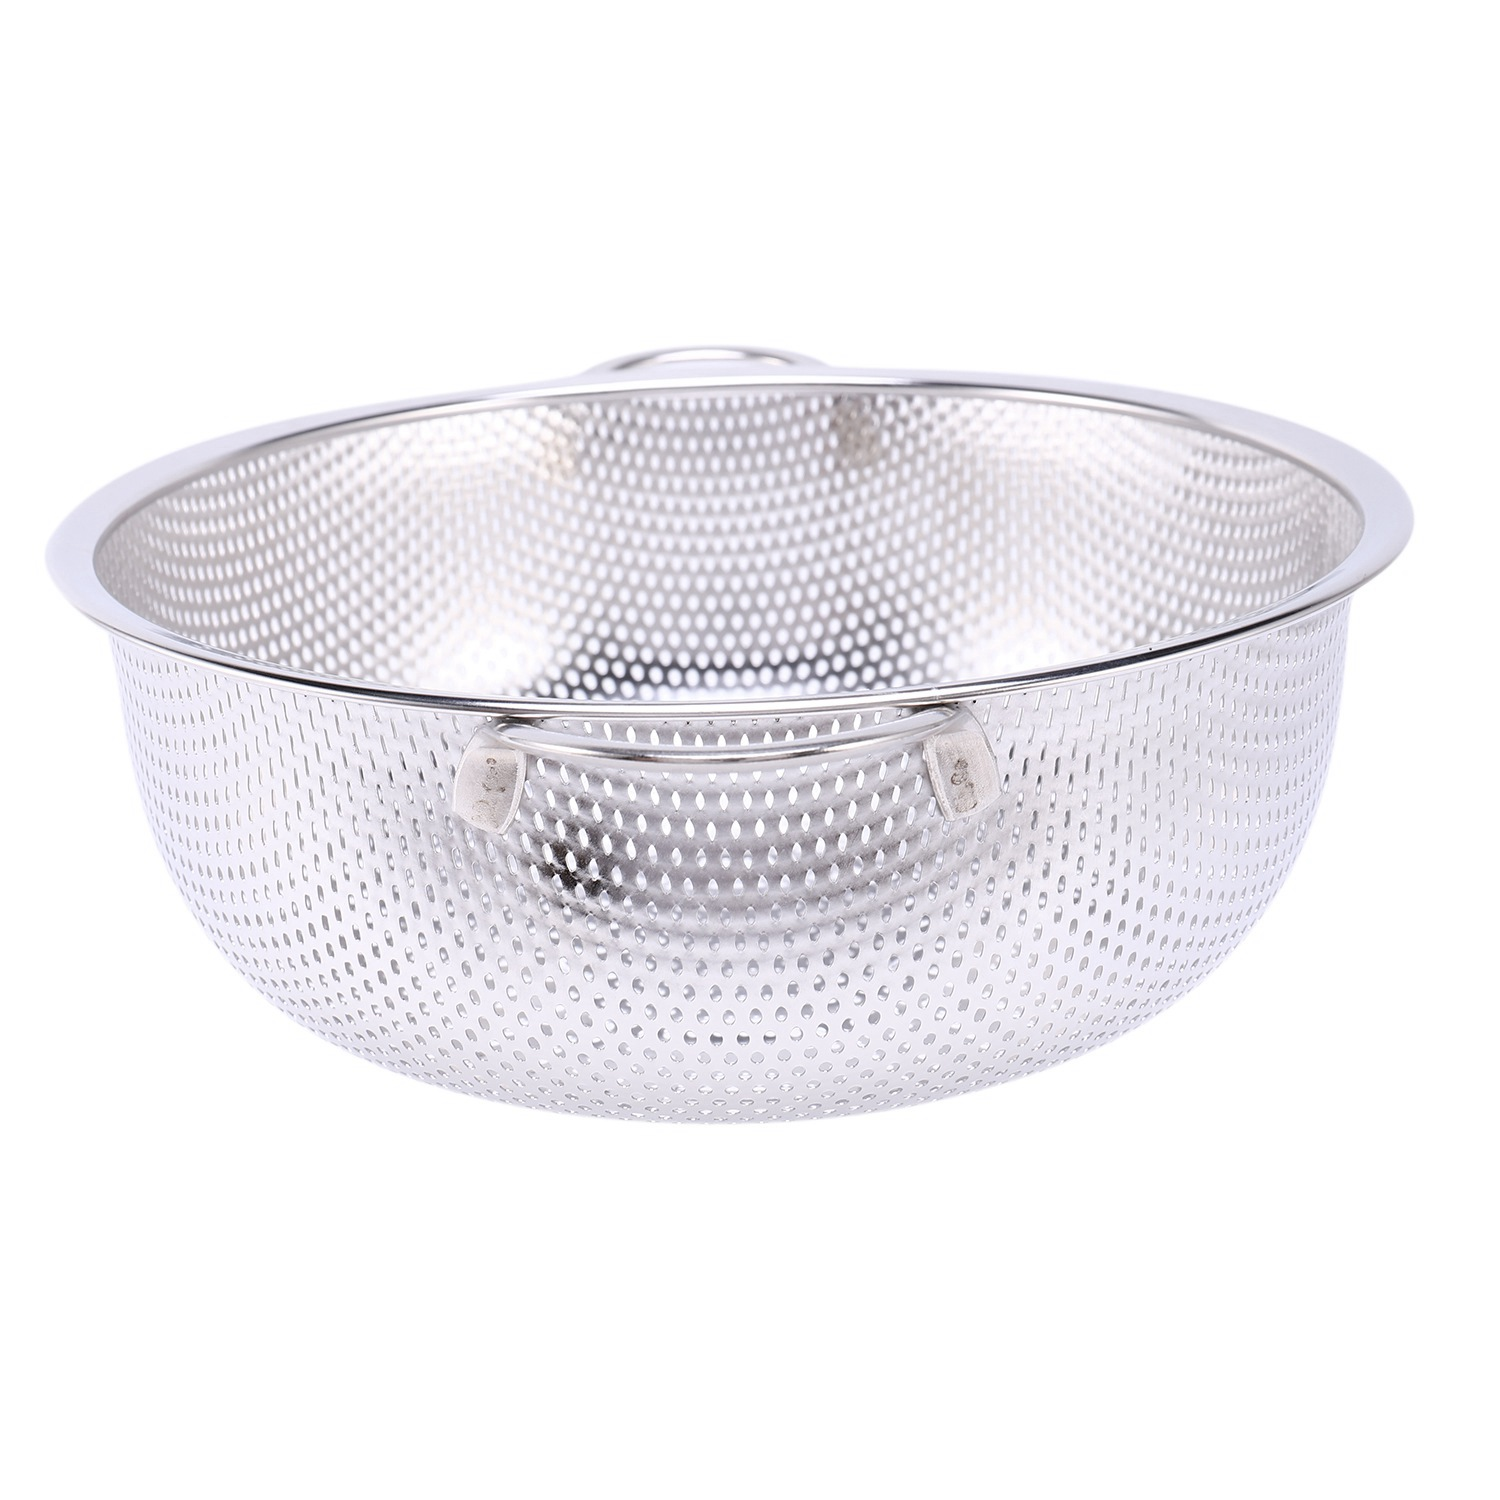 thumbnail 7 - Stainless Steel Colanders With Handle,Colander Perforated Strainer For Kitc D1Z4